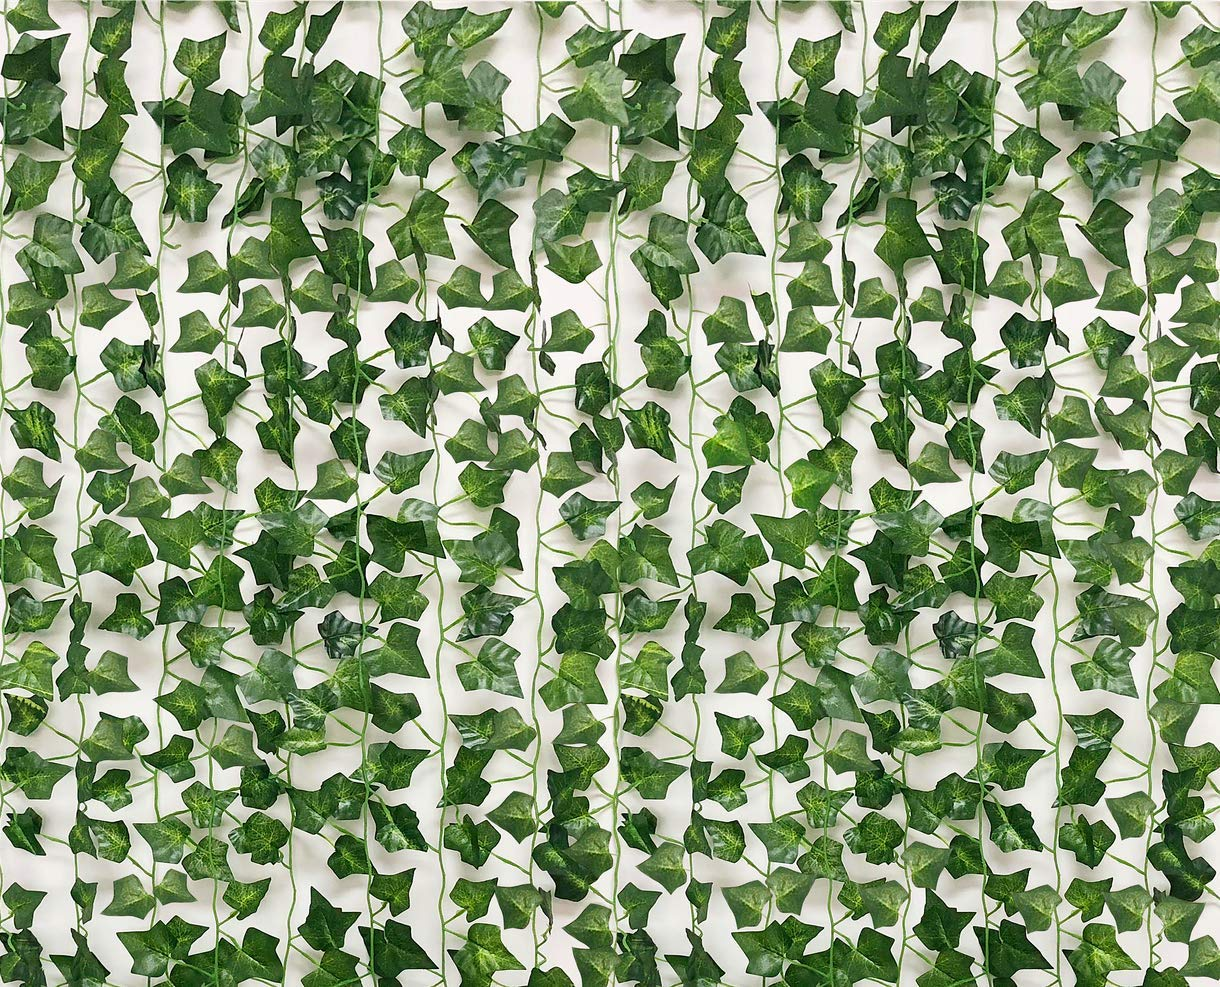 Buy See Greeen 14 Pieces 98 Feet Ivy Garland Jungle Theme Party Supplies Decorations Safari Artificial Vine Leaf Garland Fake Moss Table Runner Balcony Wall Wedding Classroom Backdrop Leaves In Cheap Price